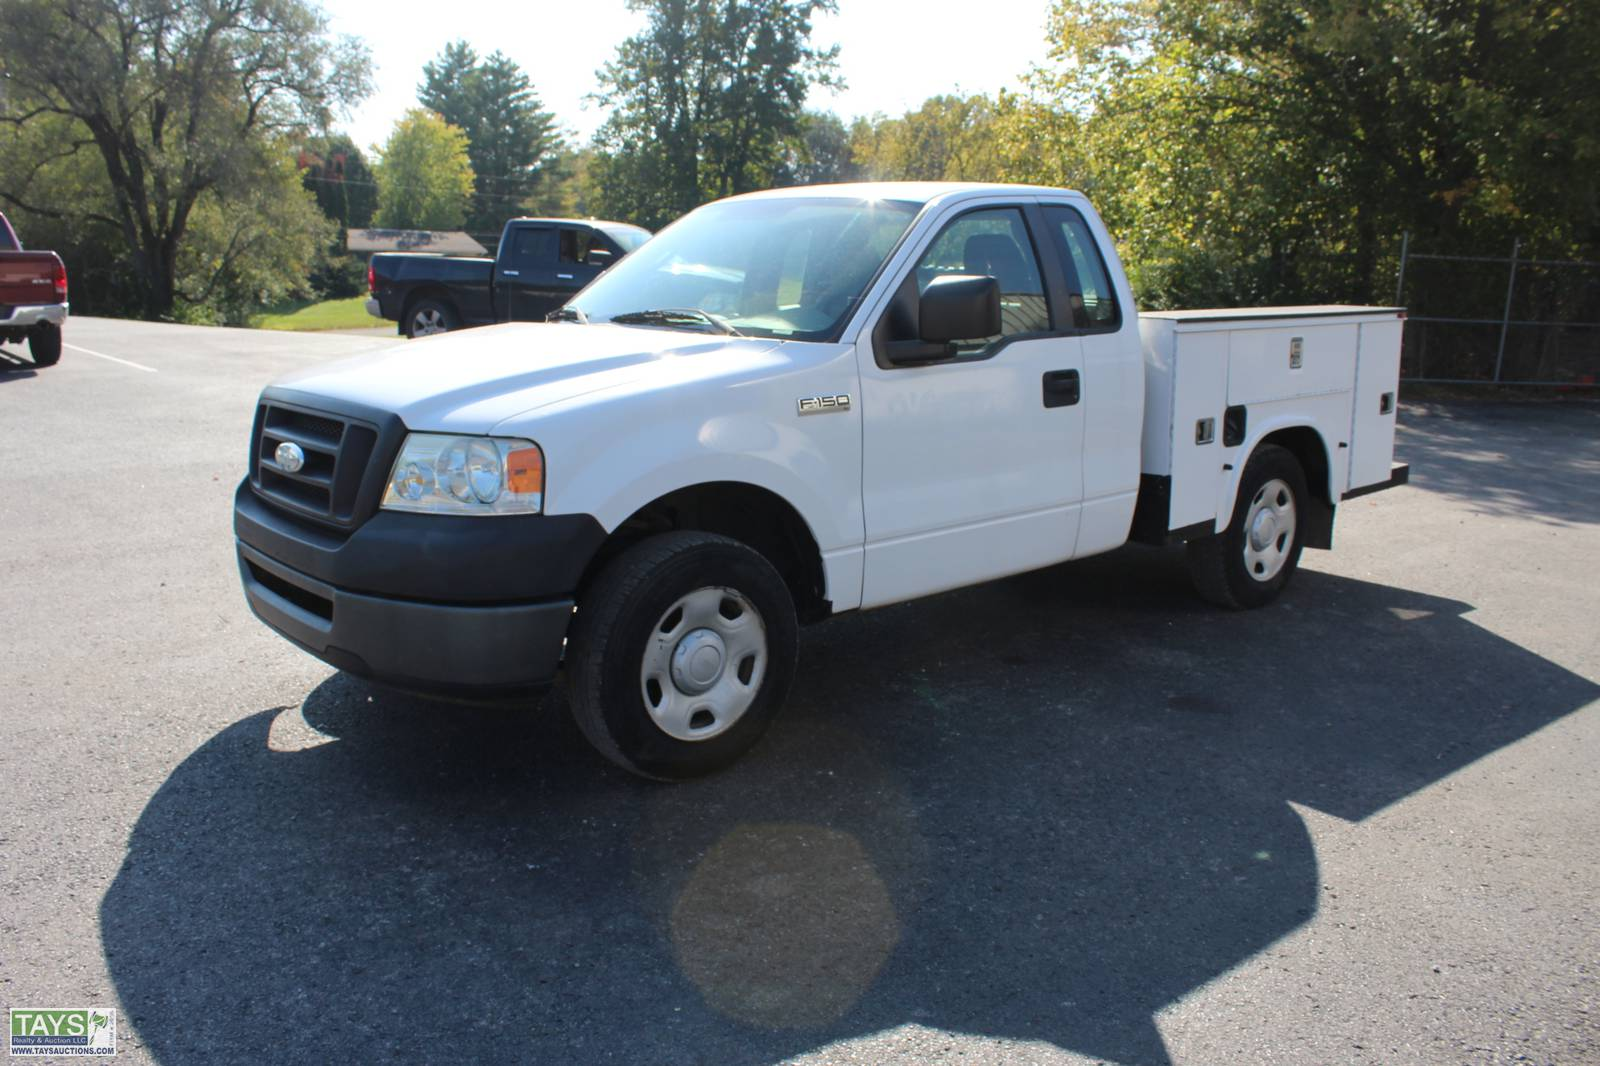 ONLINE ABSOLUTE AUCTION: VEHICLES - CONSTRUCTION EQUIPMENT - IMPLEMENTS